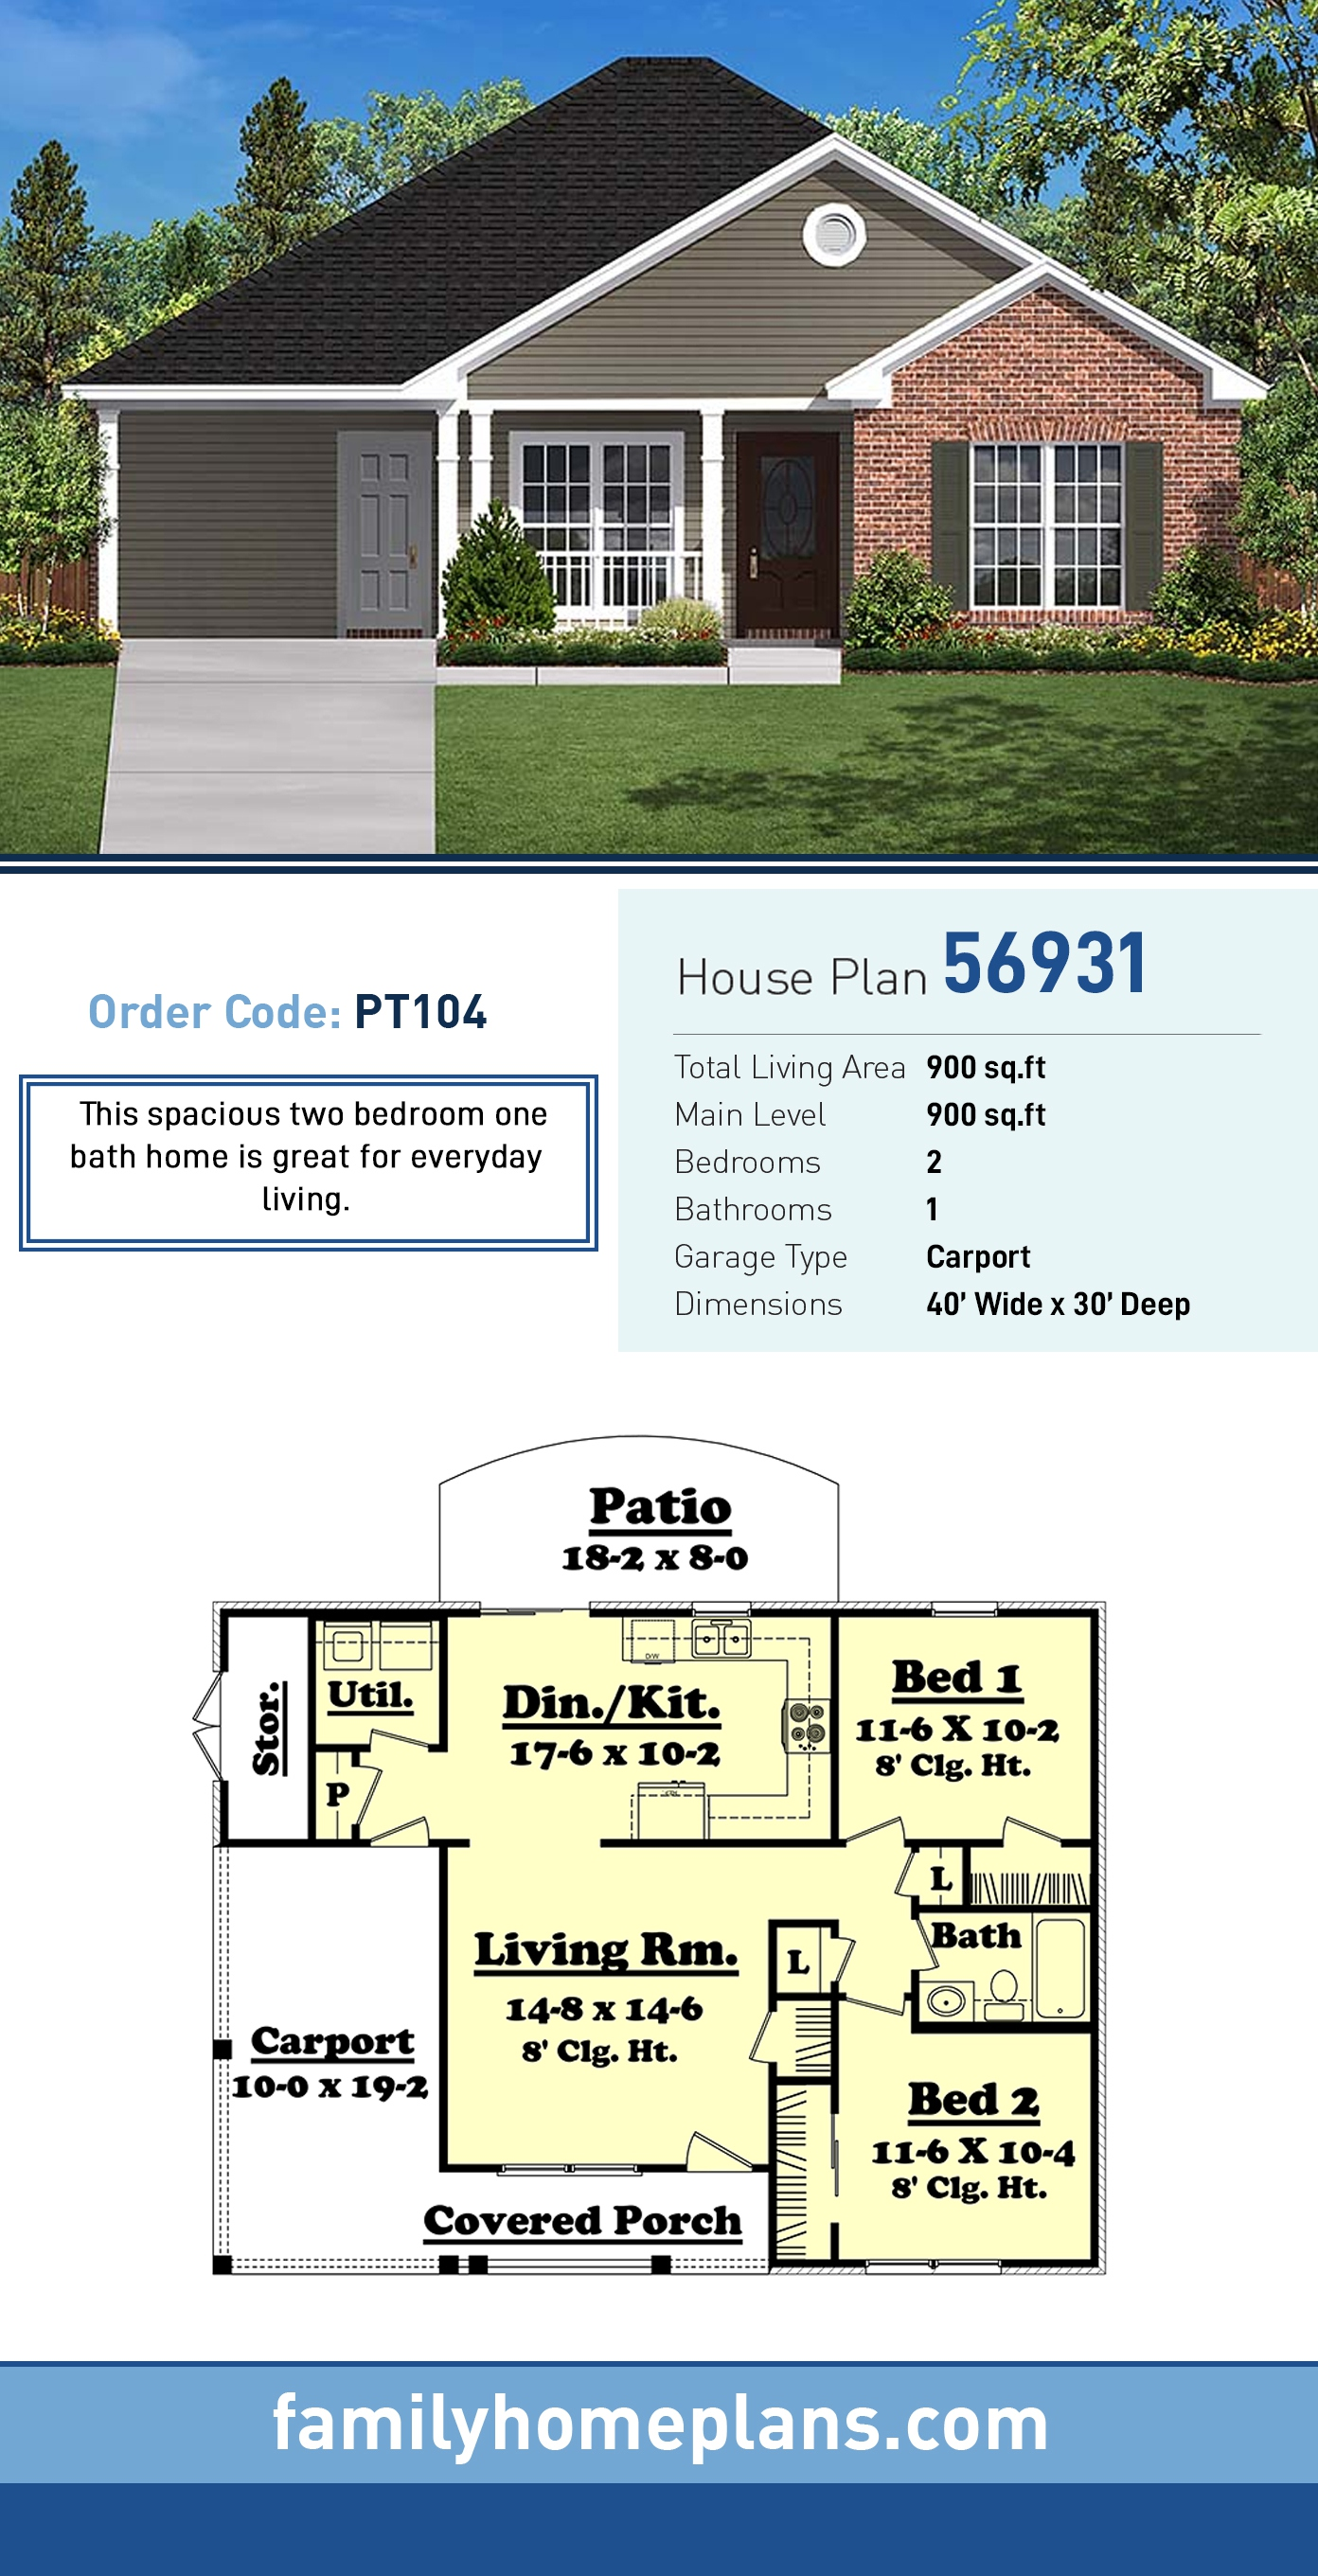 Country, Ranch, Traditional House Plan 56931 with 2 Beds, 1 Baths, 1 Car Garage